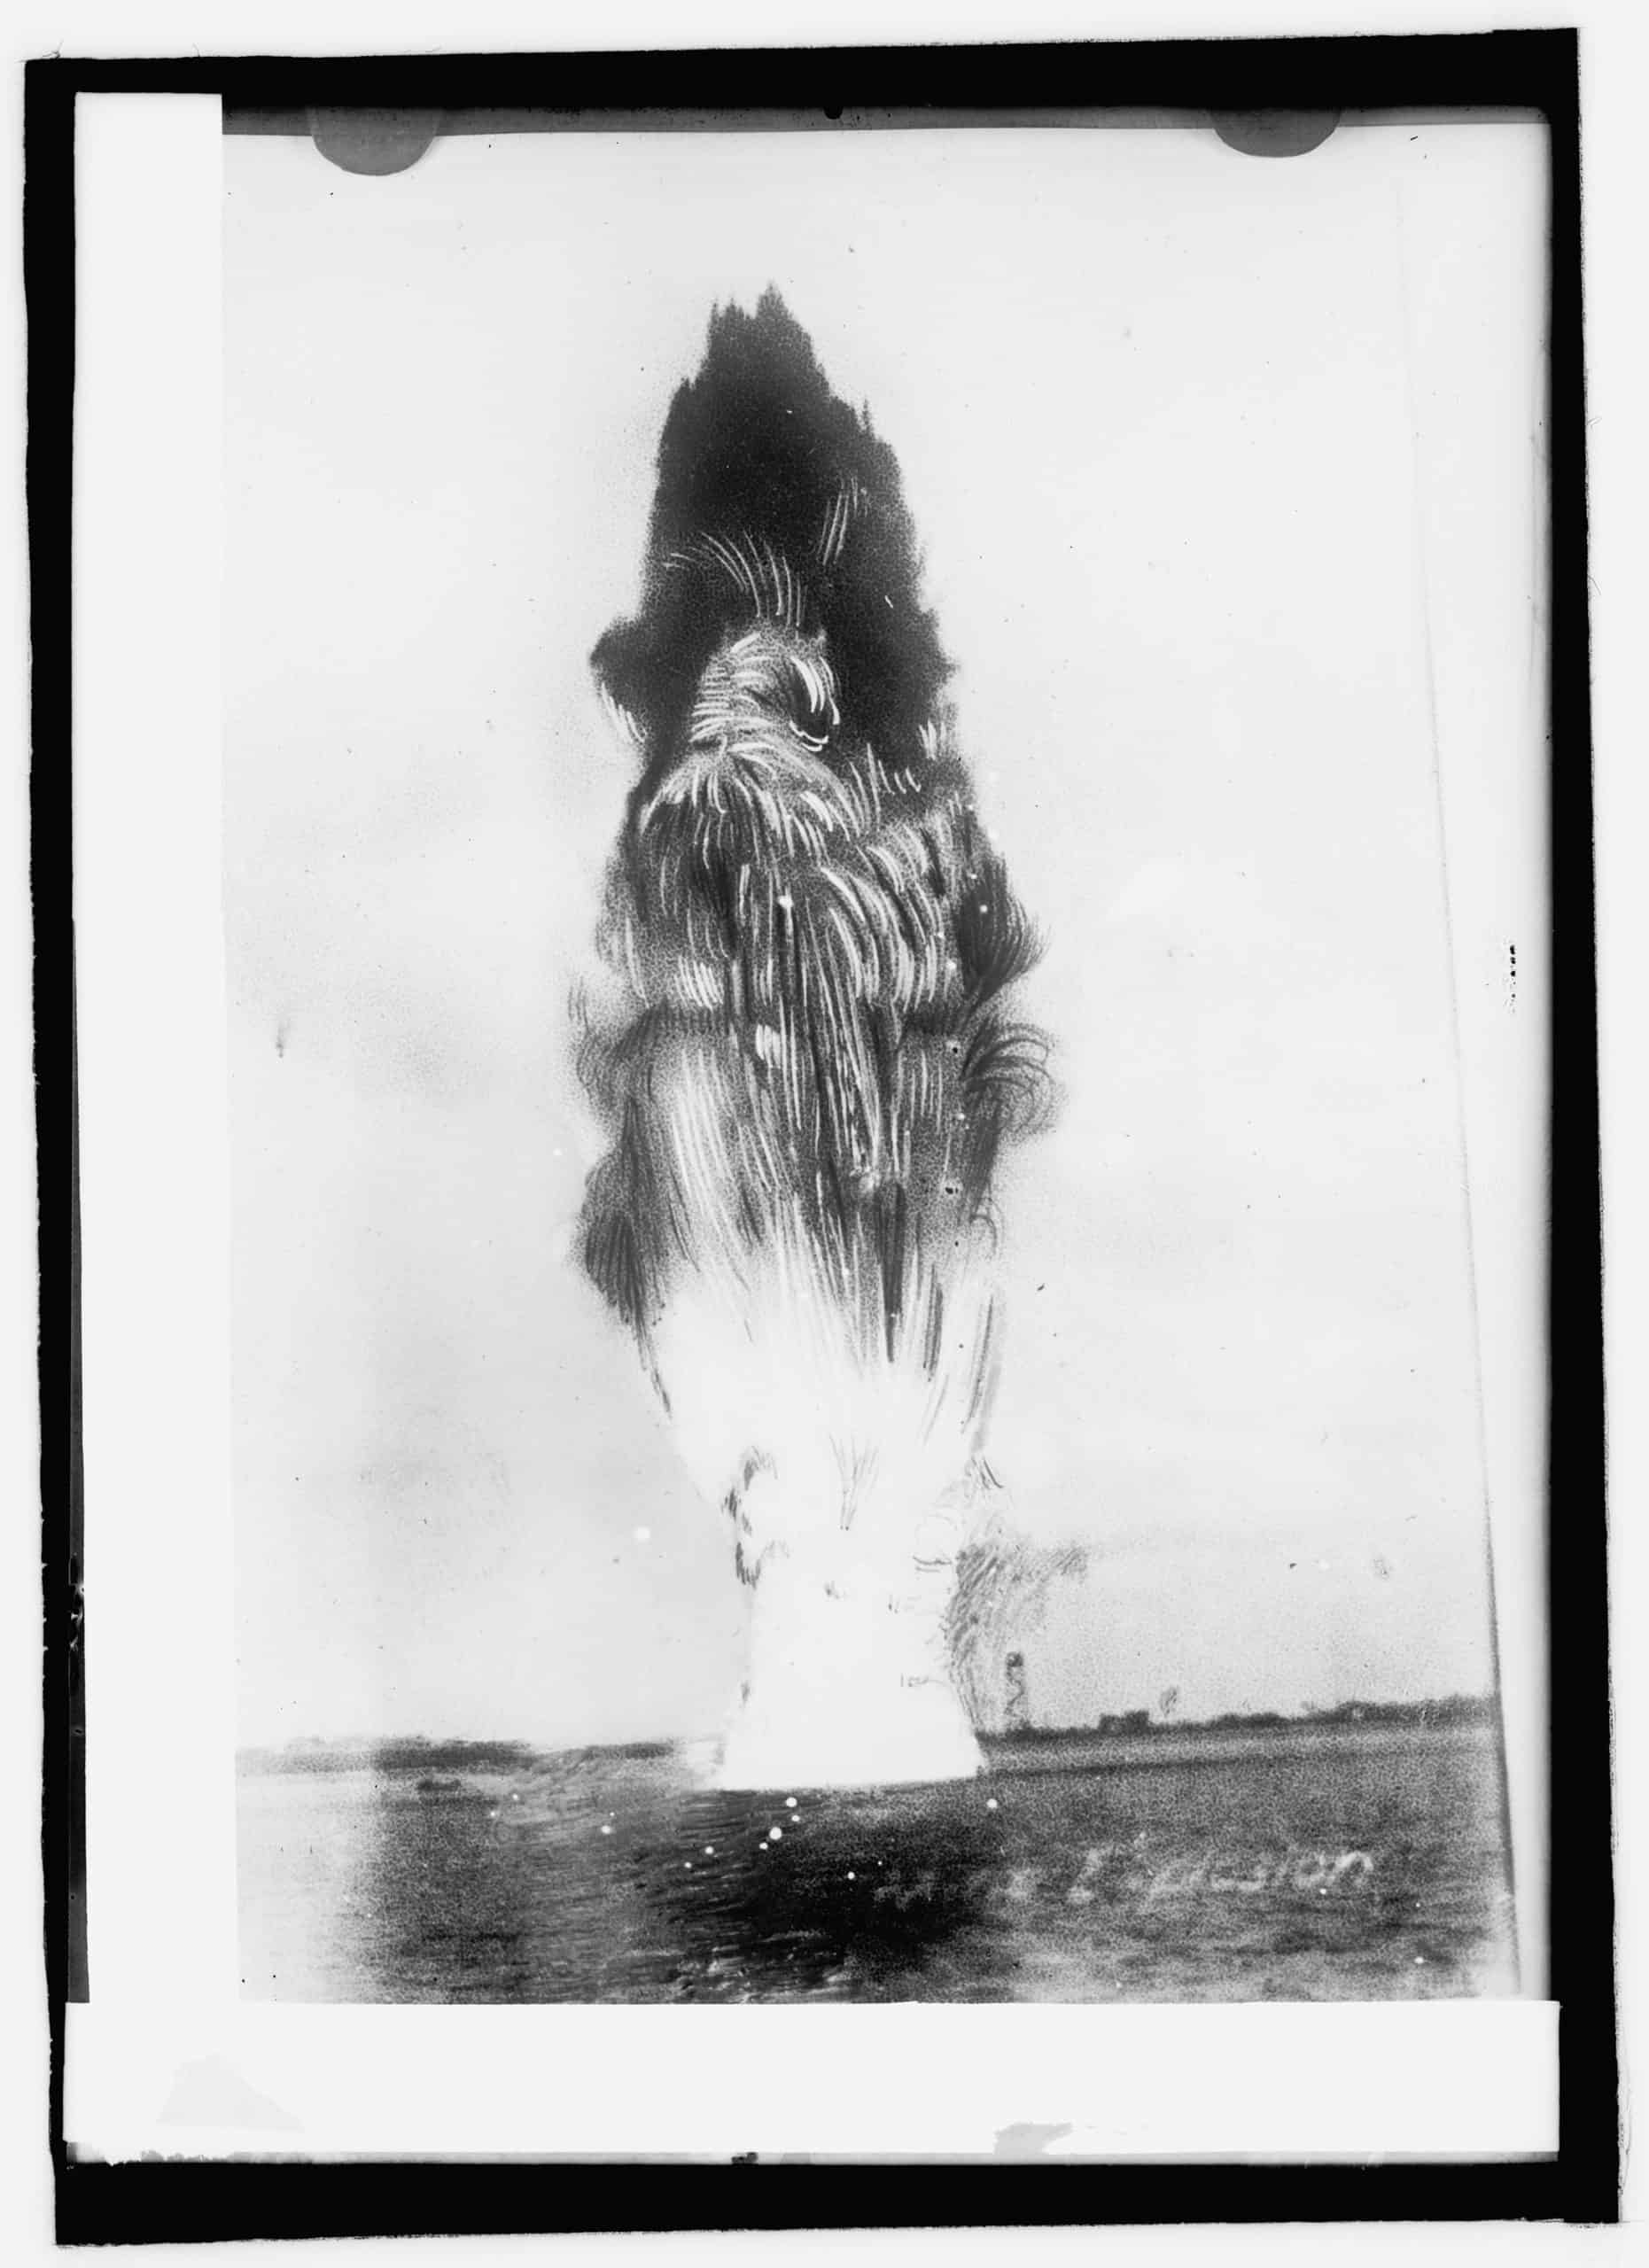 Submarine mine explosion, unknown photographer, between 1908 and 1919